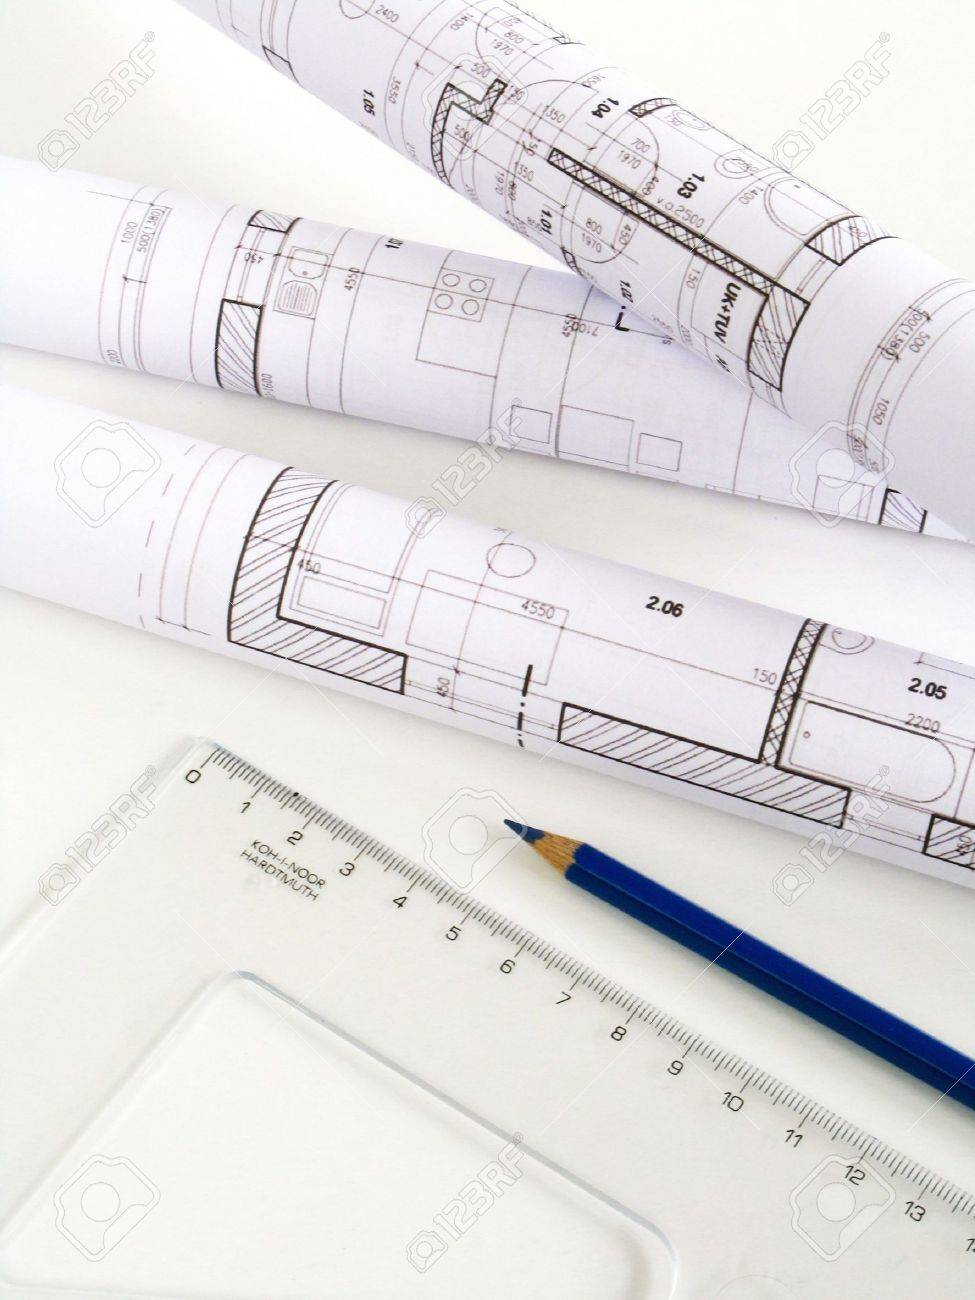 Architectural Sketch Of House Plan Stock Photo Picture And